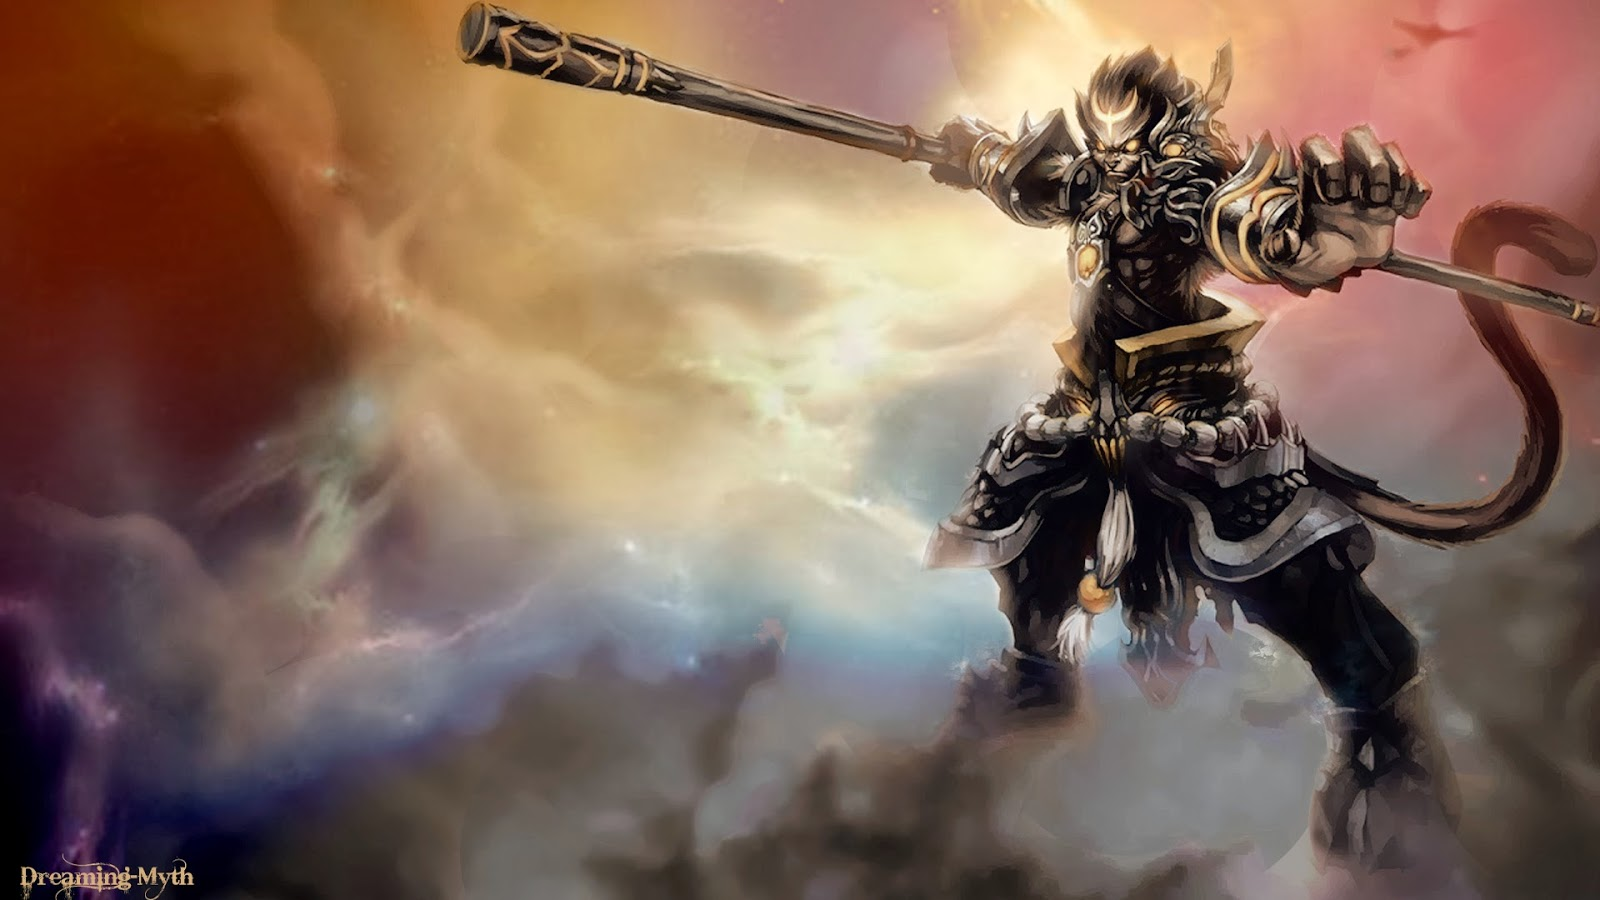 Wukong Desktop Backgrounds Wukong LOL Champion Wallpapers 1600x900